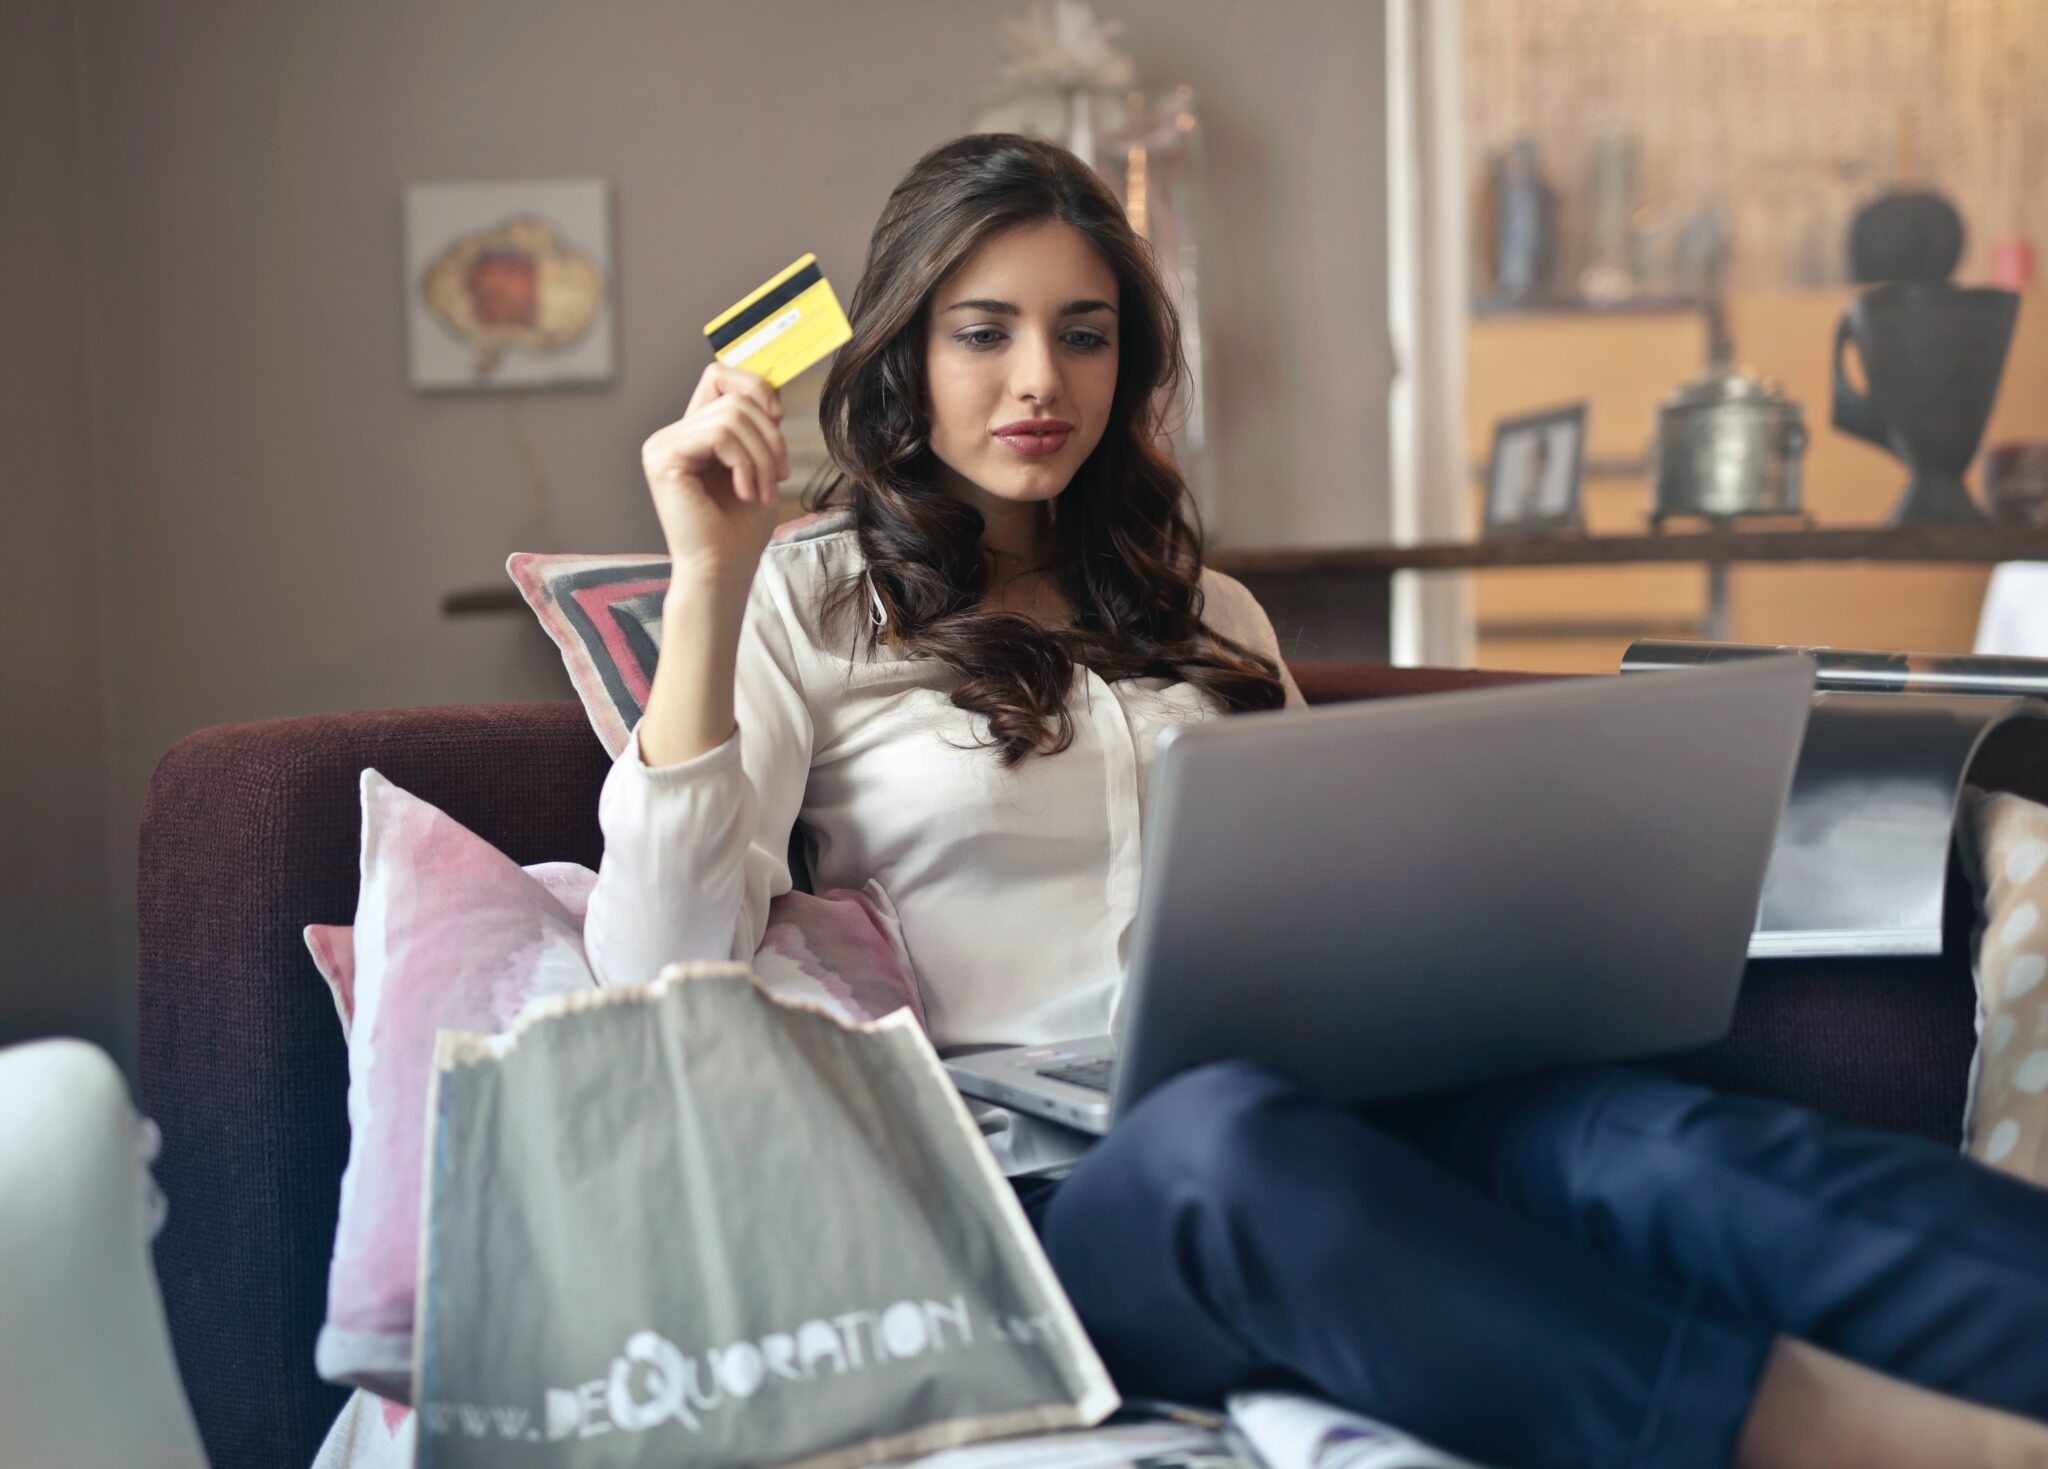 Top 5 eCommerce Ideas to try in 2021